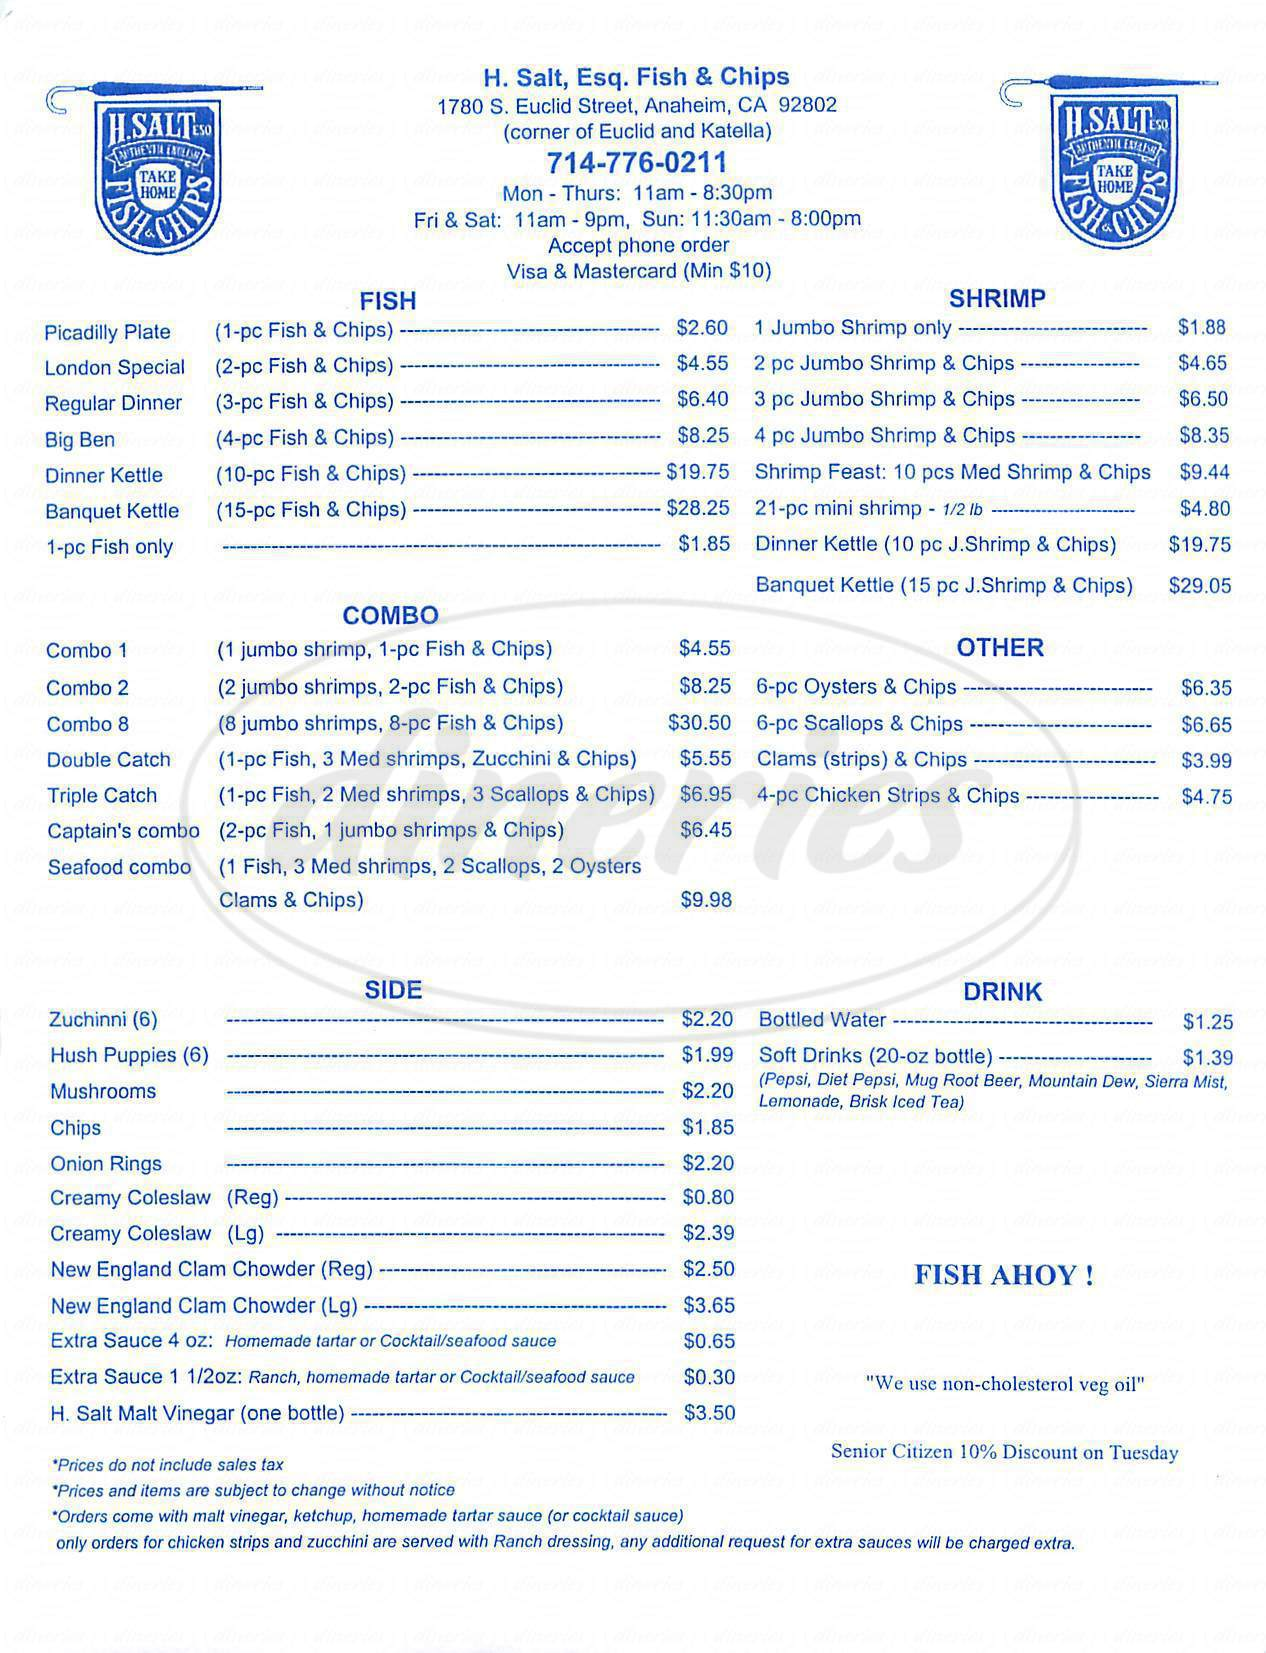 menu for H Salt Esq Fish & Chips